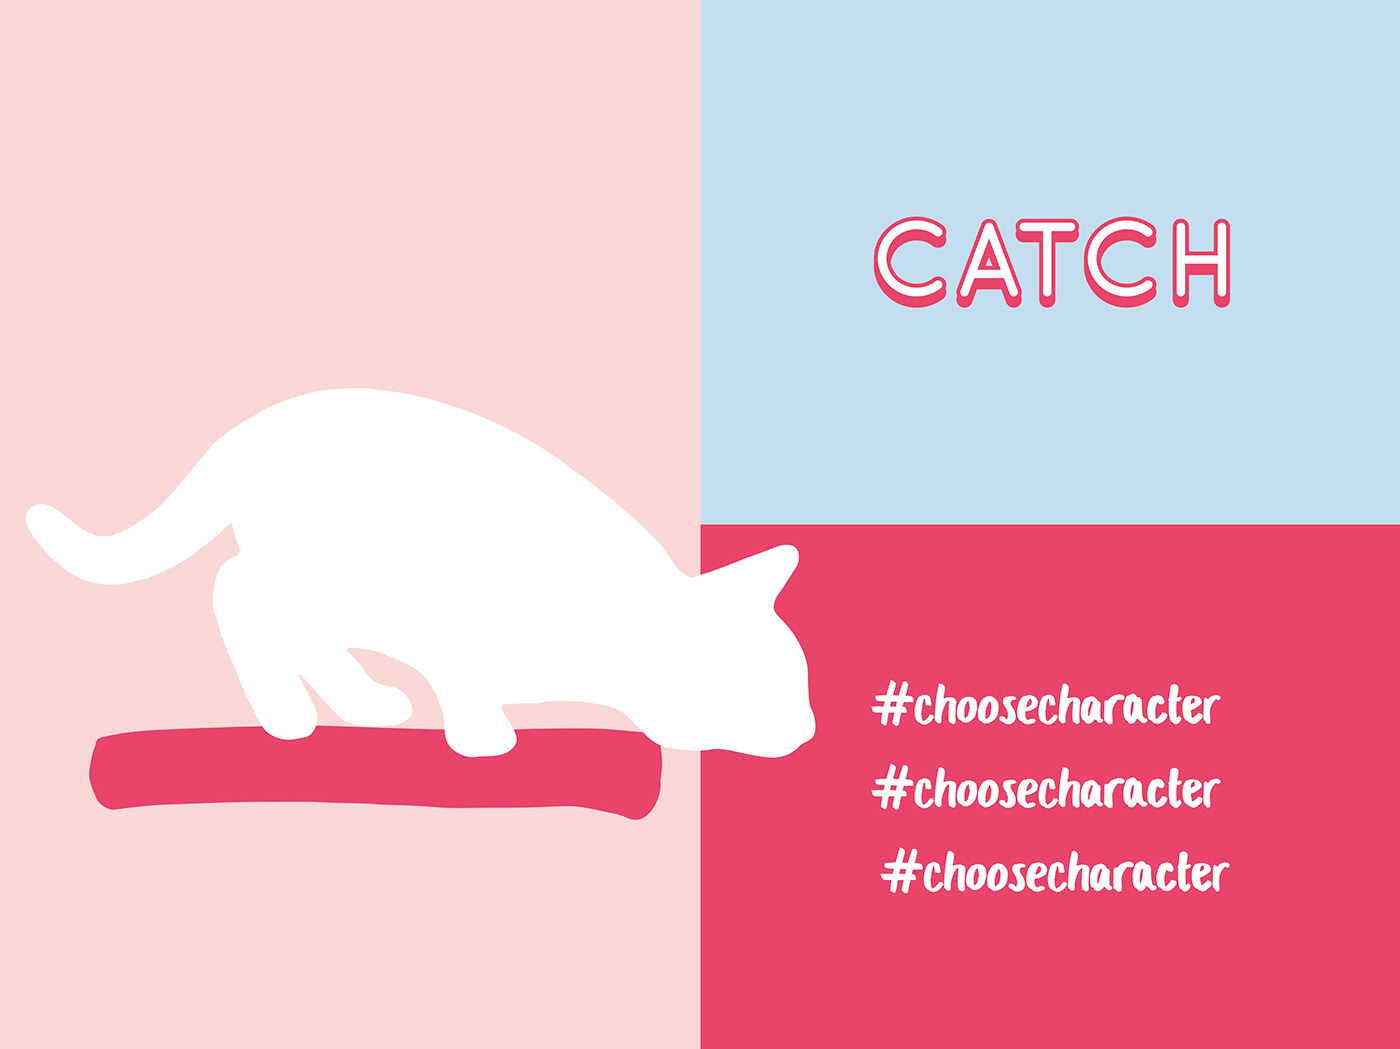 Cat campaign valentines charity Packaging poster app ILLUSTRATION  match Character